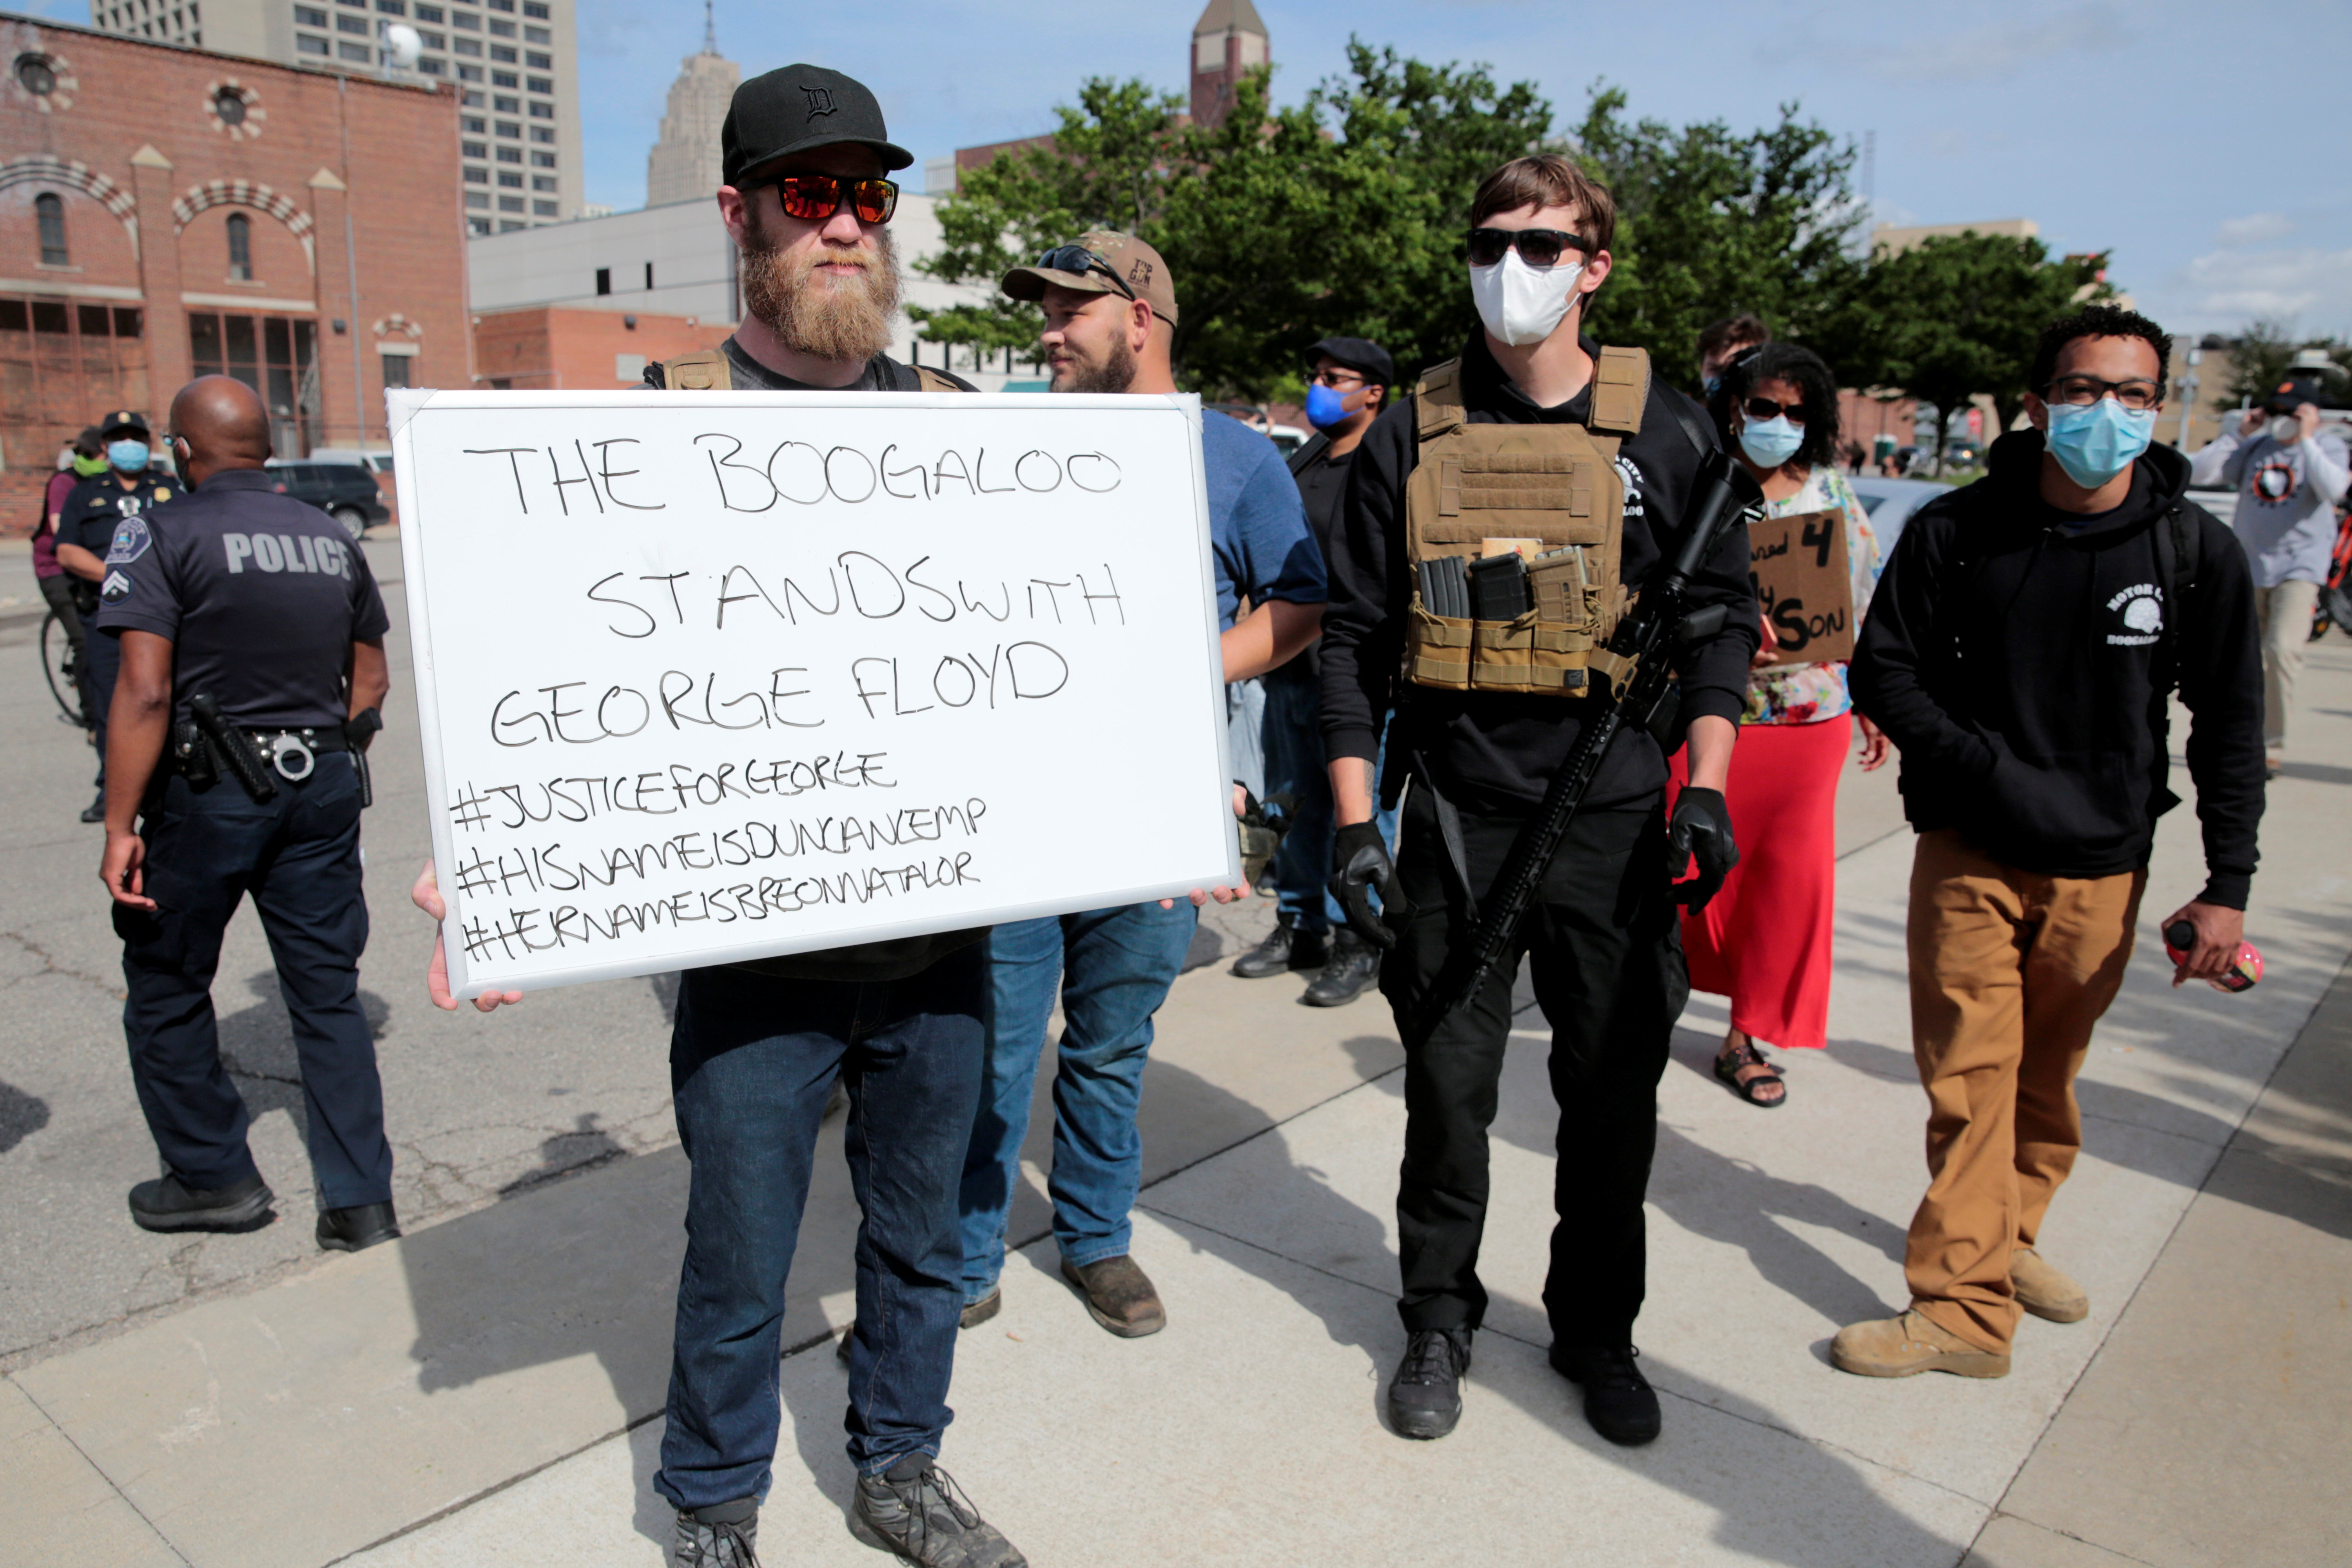 """Armed men, one carrying a """"The Boogaloo stands with George Floyd"""" sign, are seen as protesters rally against the death in Minneapolis police custody of George Floyd, in Detroit, Michigan, U.S. May 30, 2020. Picture taken May 30, 2020.   REUTERS/Rebecca Cook"""